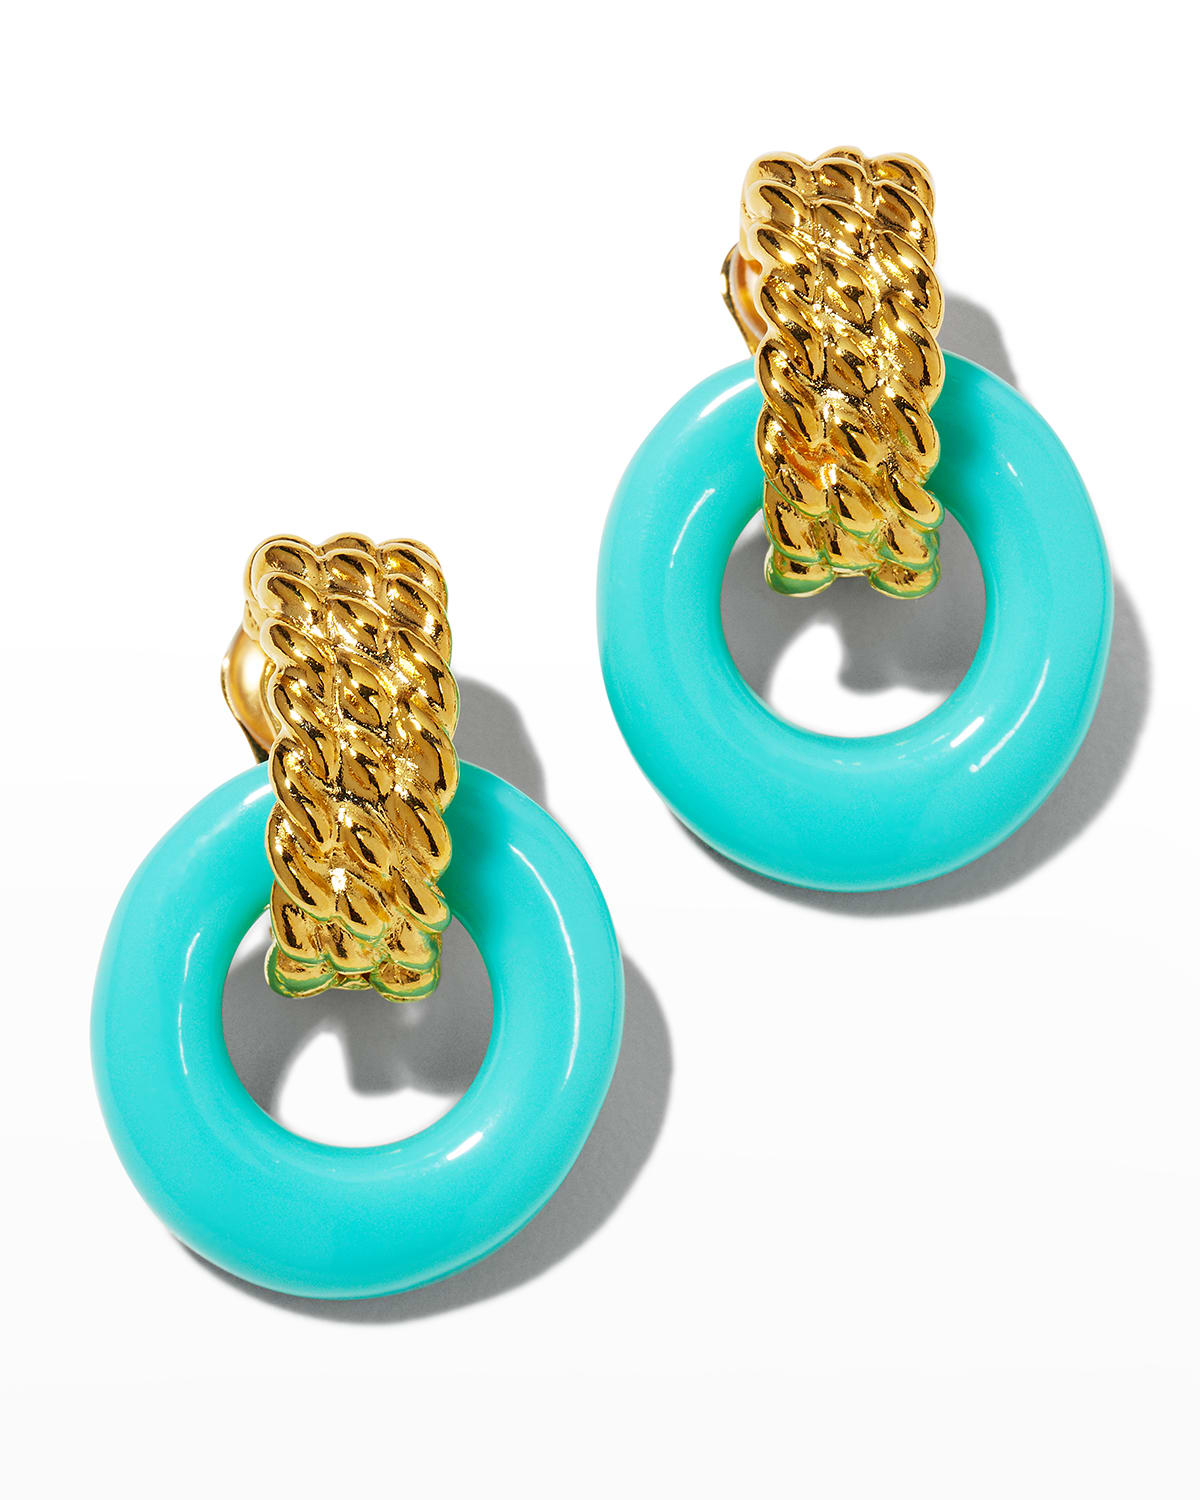 Gold Top and Turquoise Bottom Doorknocker Clip Earrings